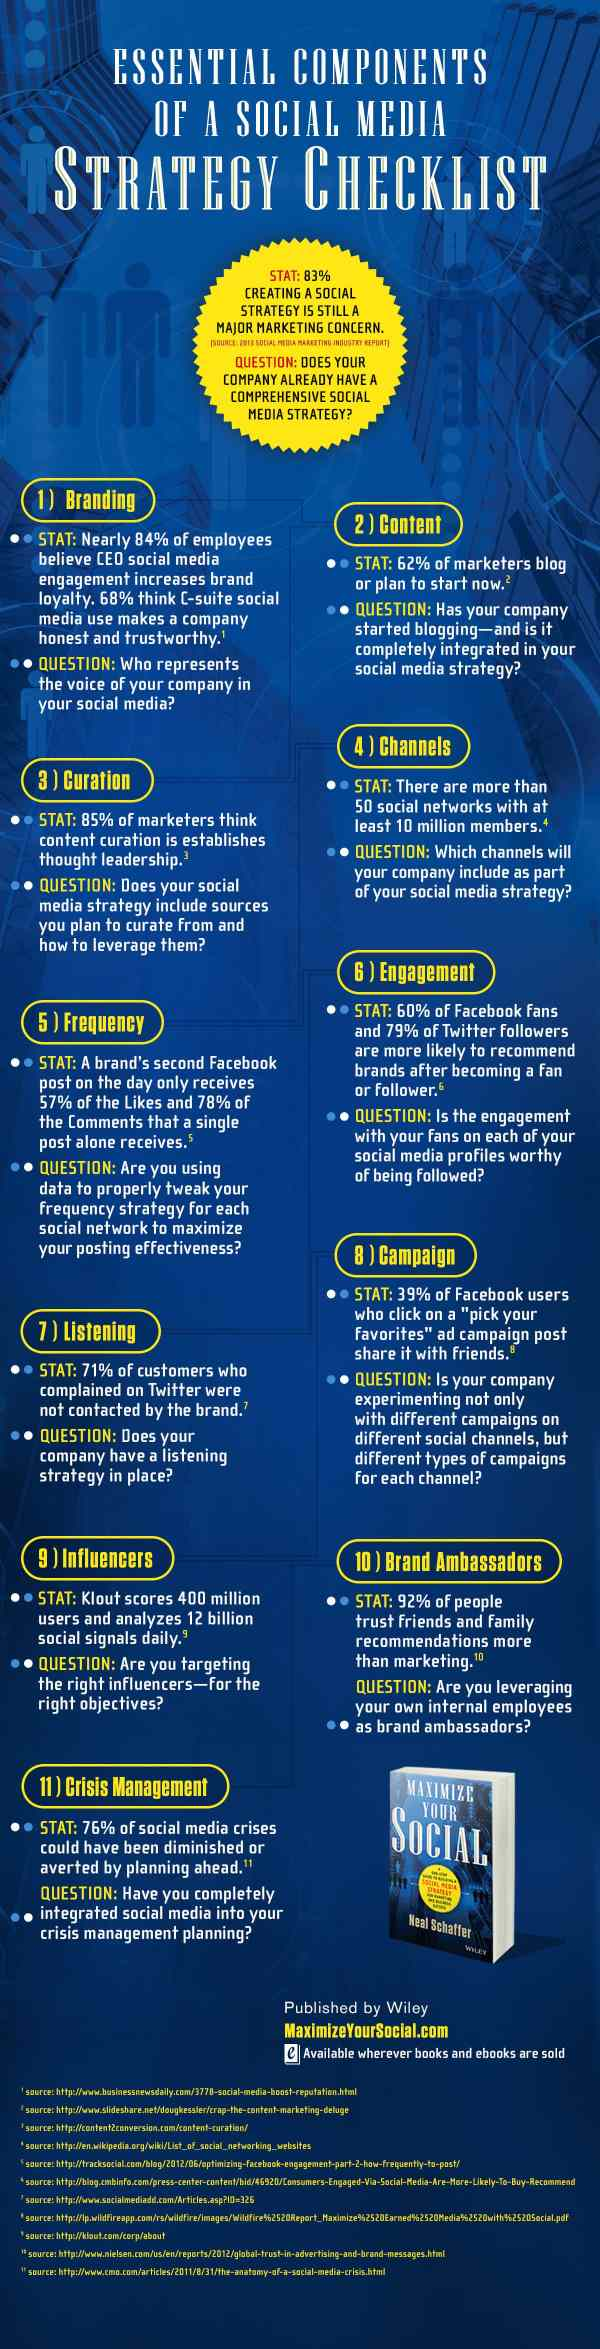 essential components of a social media strategy infographic by neal schaffer of maximize your social